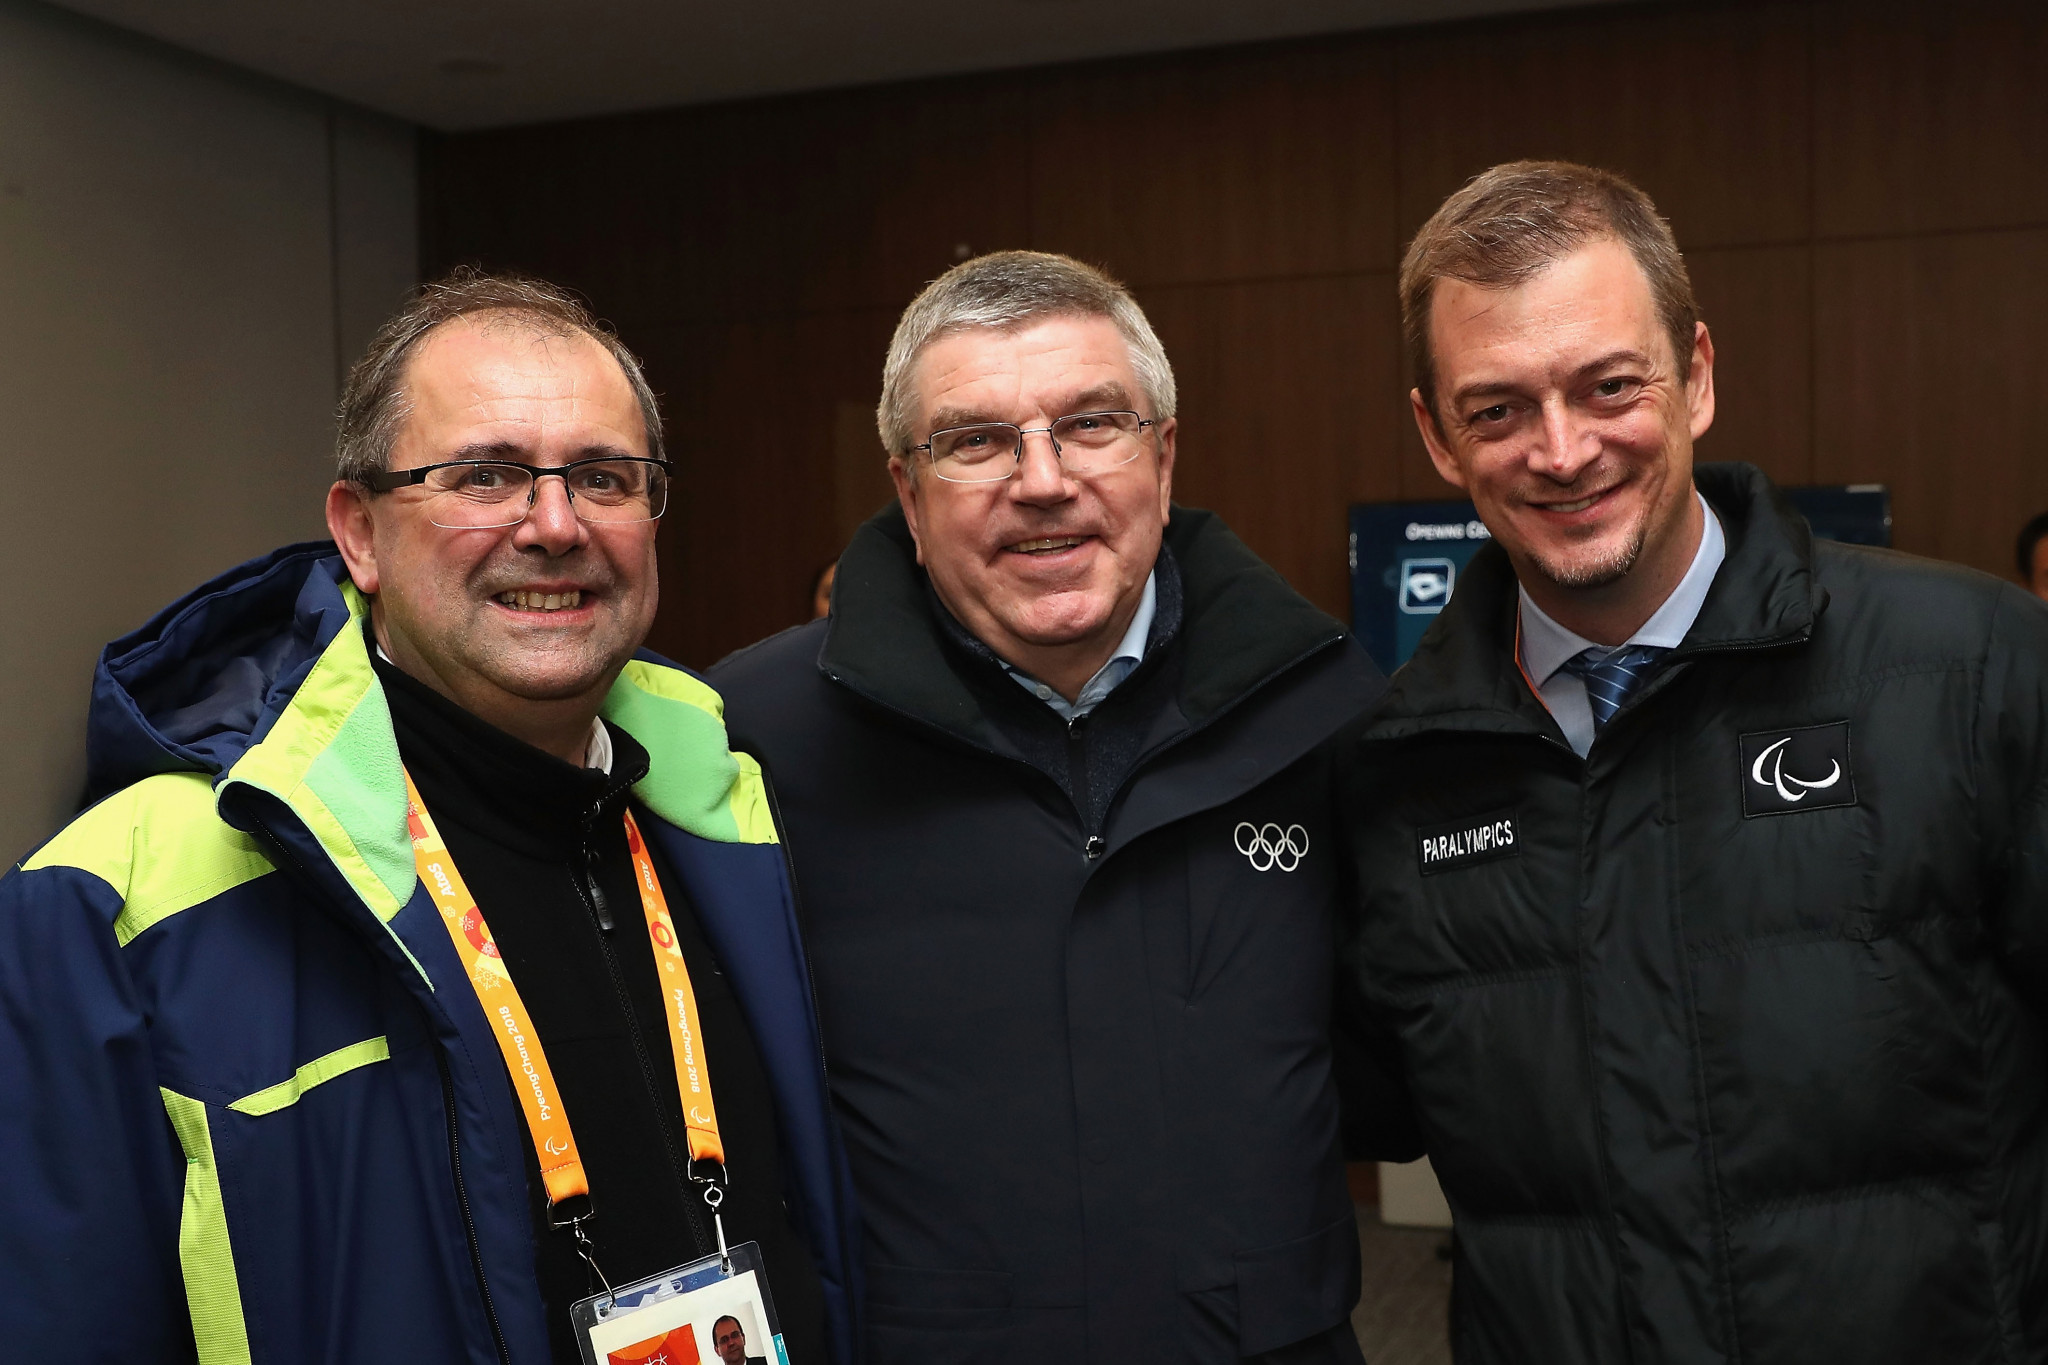 Xavier Gonzalez, left, with IOC President Thomas Bach, centre, and IPC President Andrew Parsons ©Getty Images